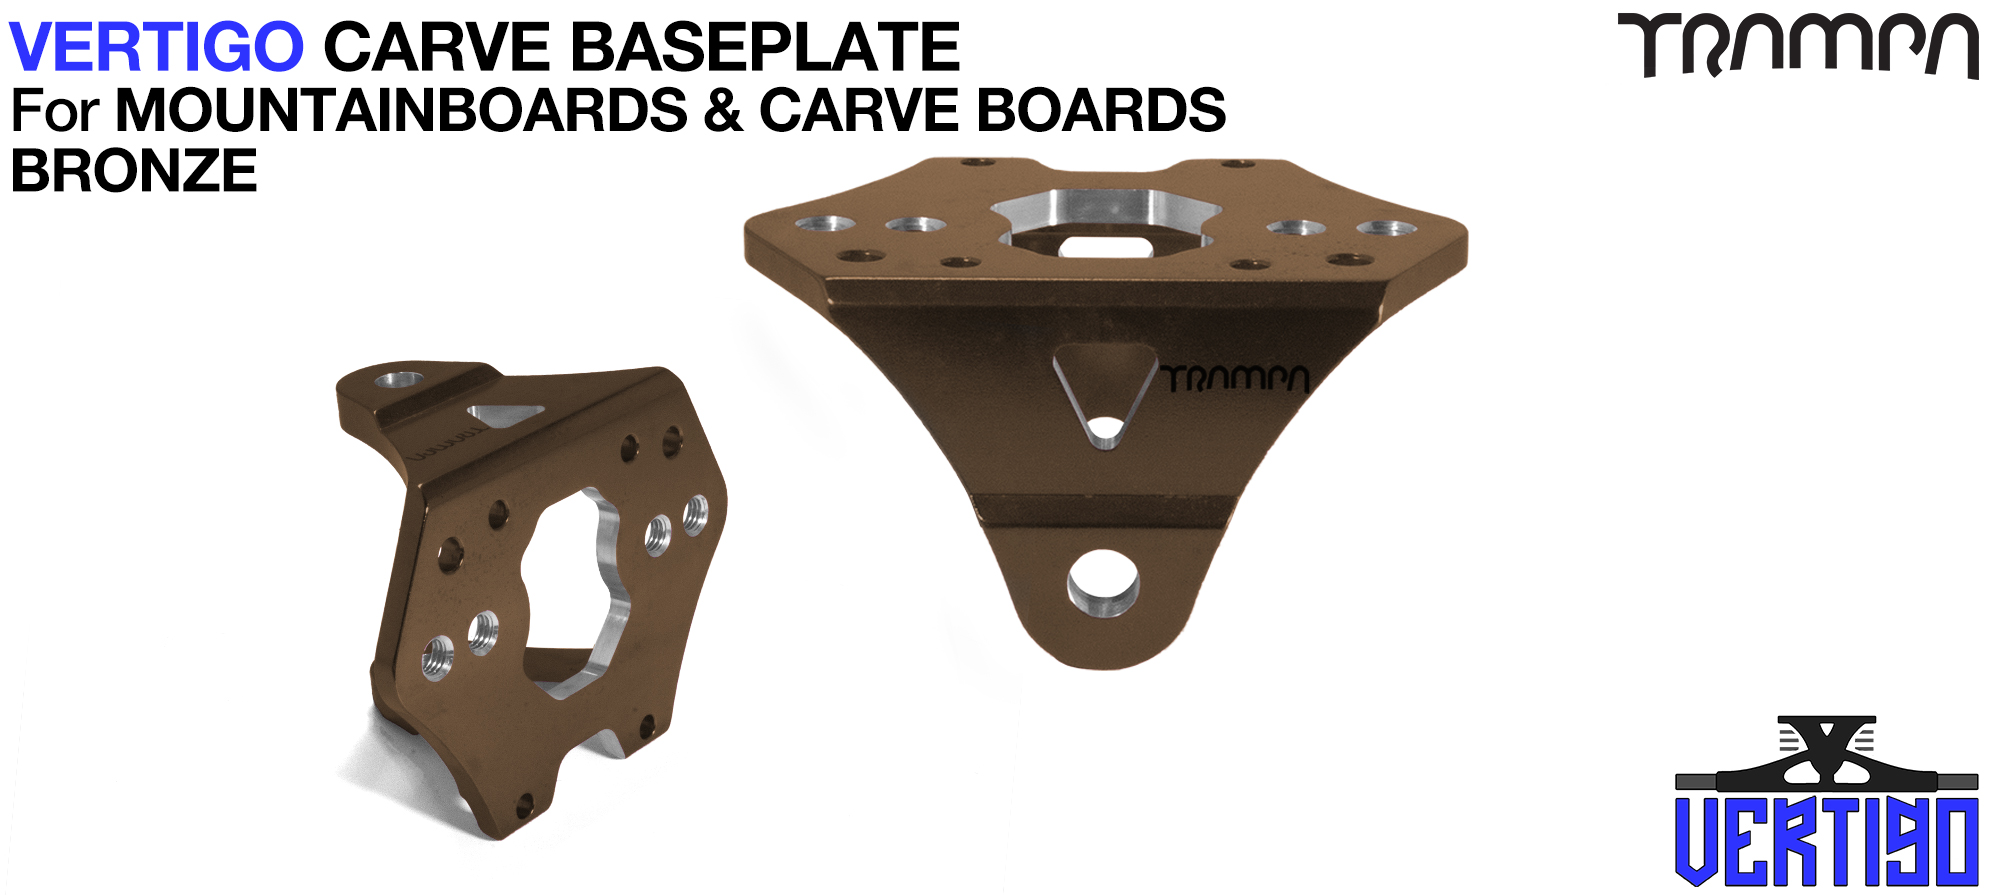 VERTIGO Baseplate BRONZE - T6 Aluminum Anodised & CNC lightened - Black logo  Carve